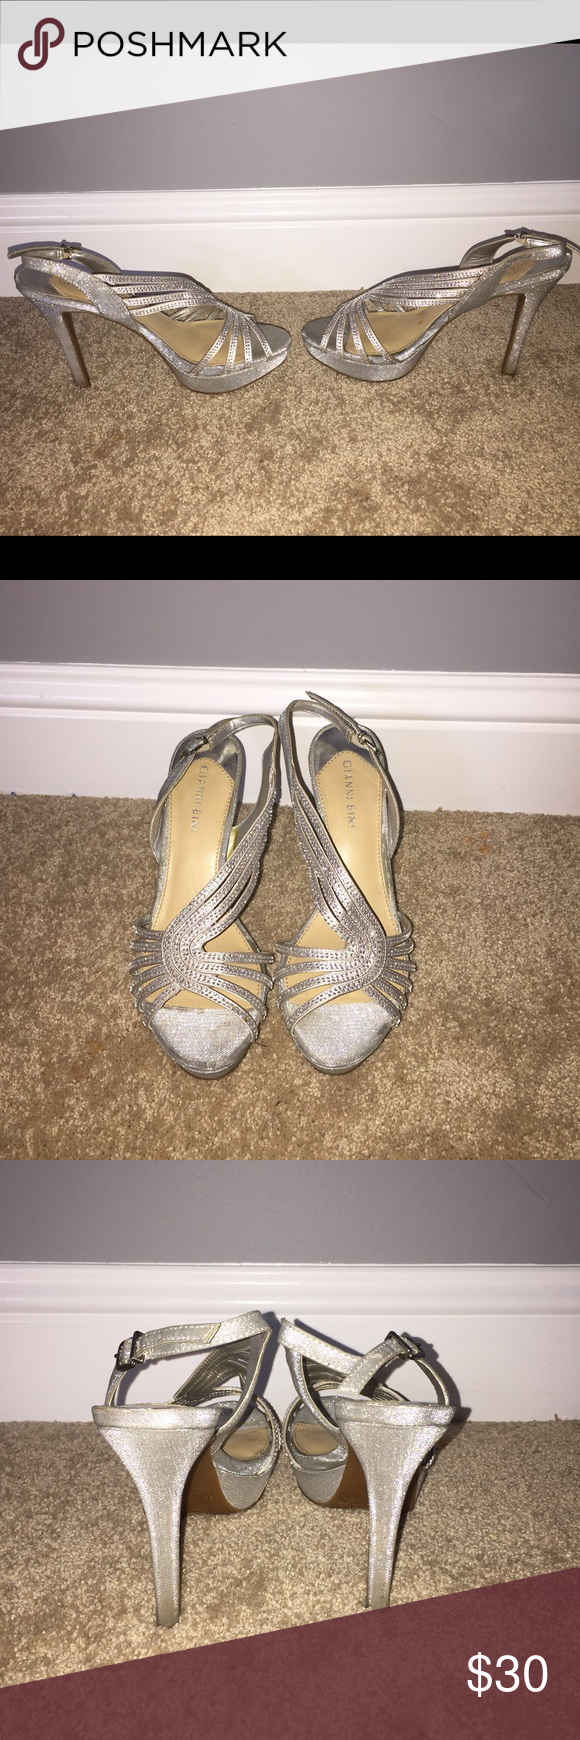 Gianni Bini Heels Silver rhinestone encrusted heels. I wore once for a wedding so they are in used condition per that night. They have some mild wear and tear. Gianni Bini Shoes Heels